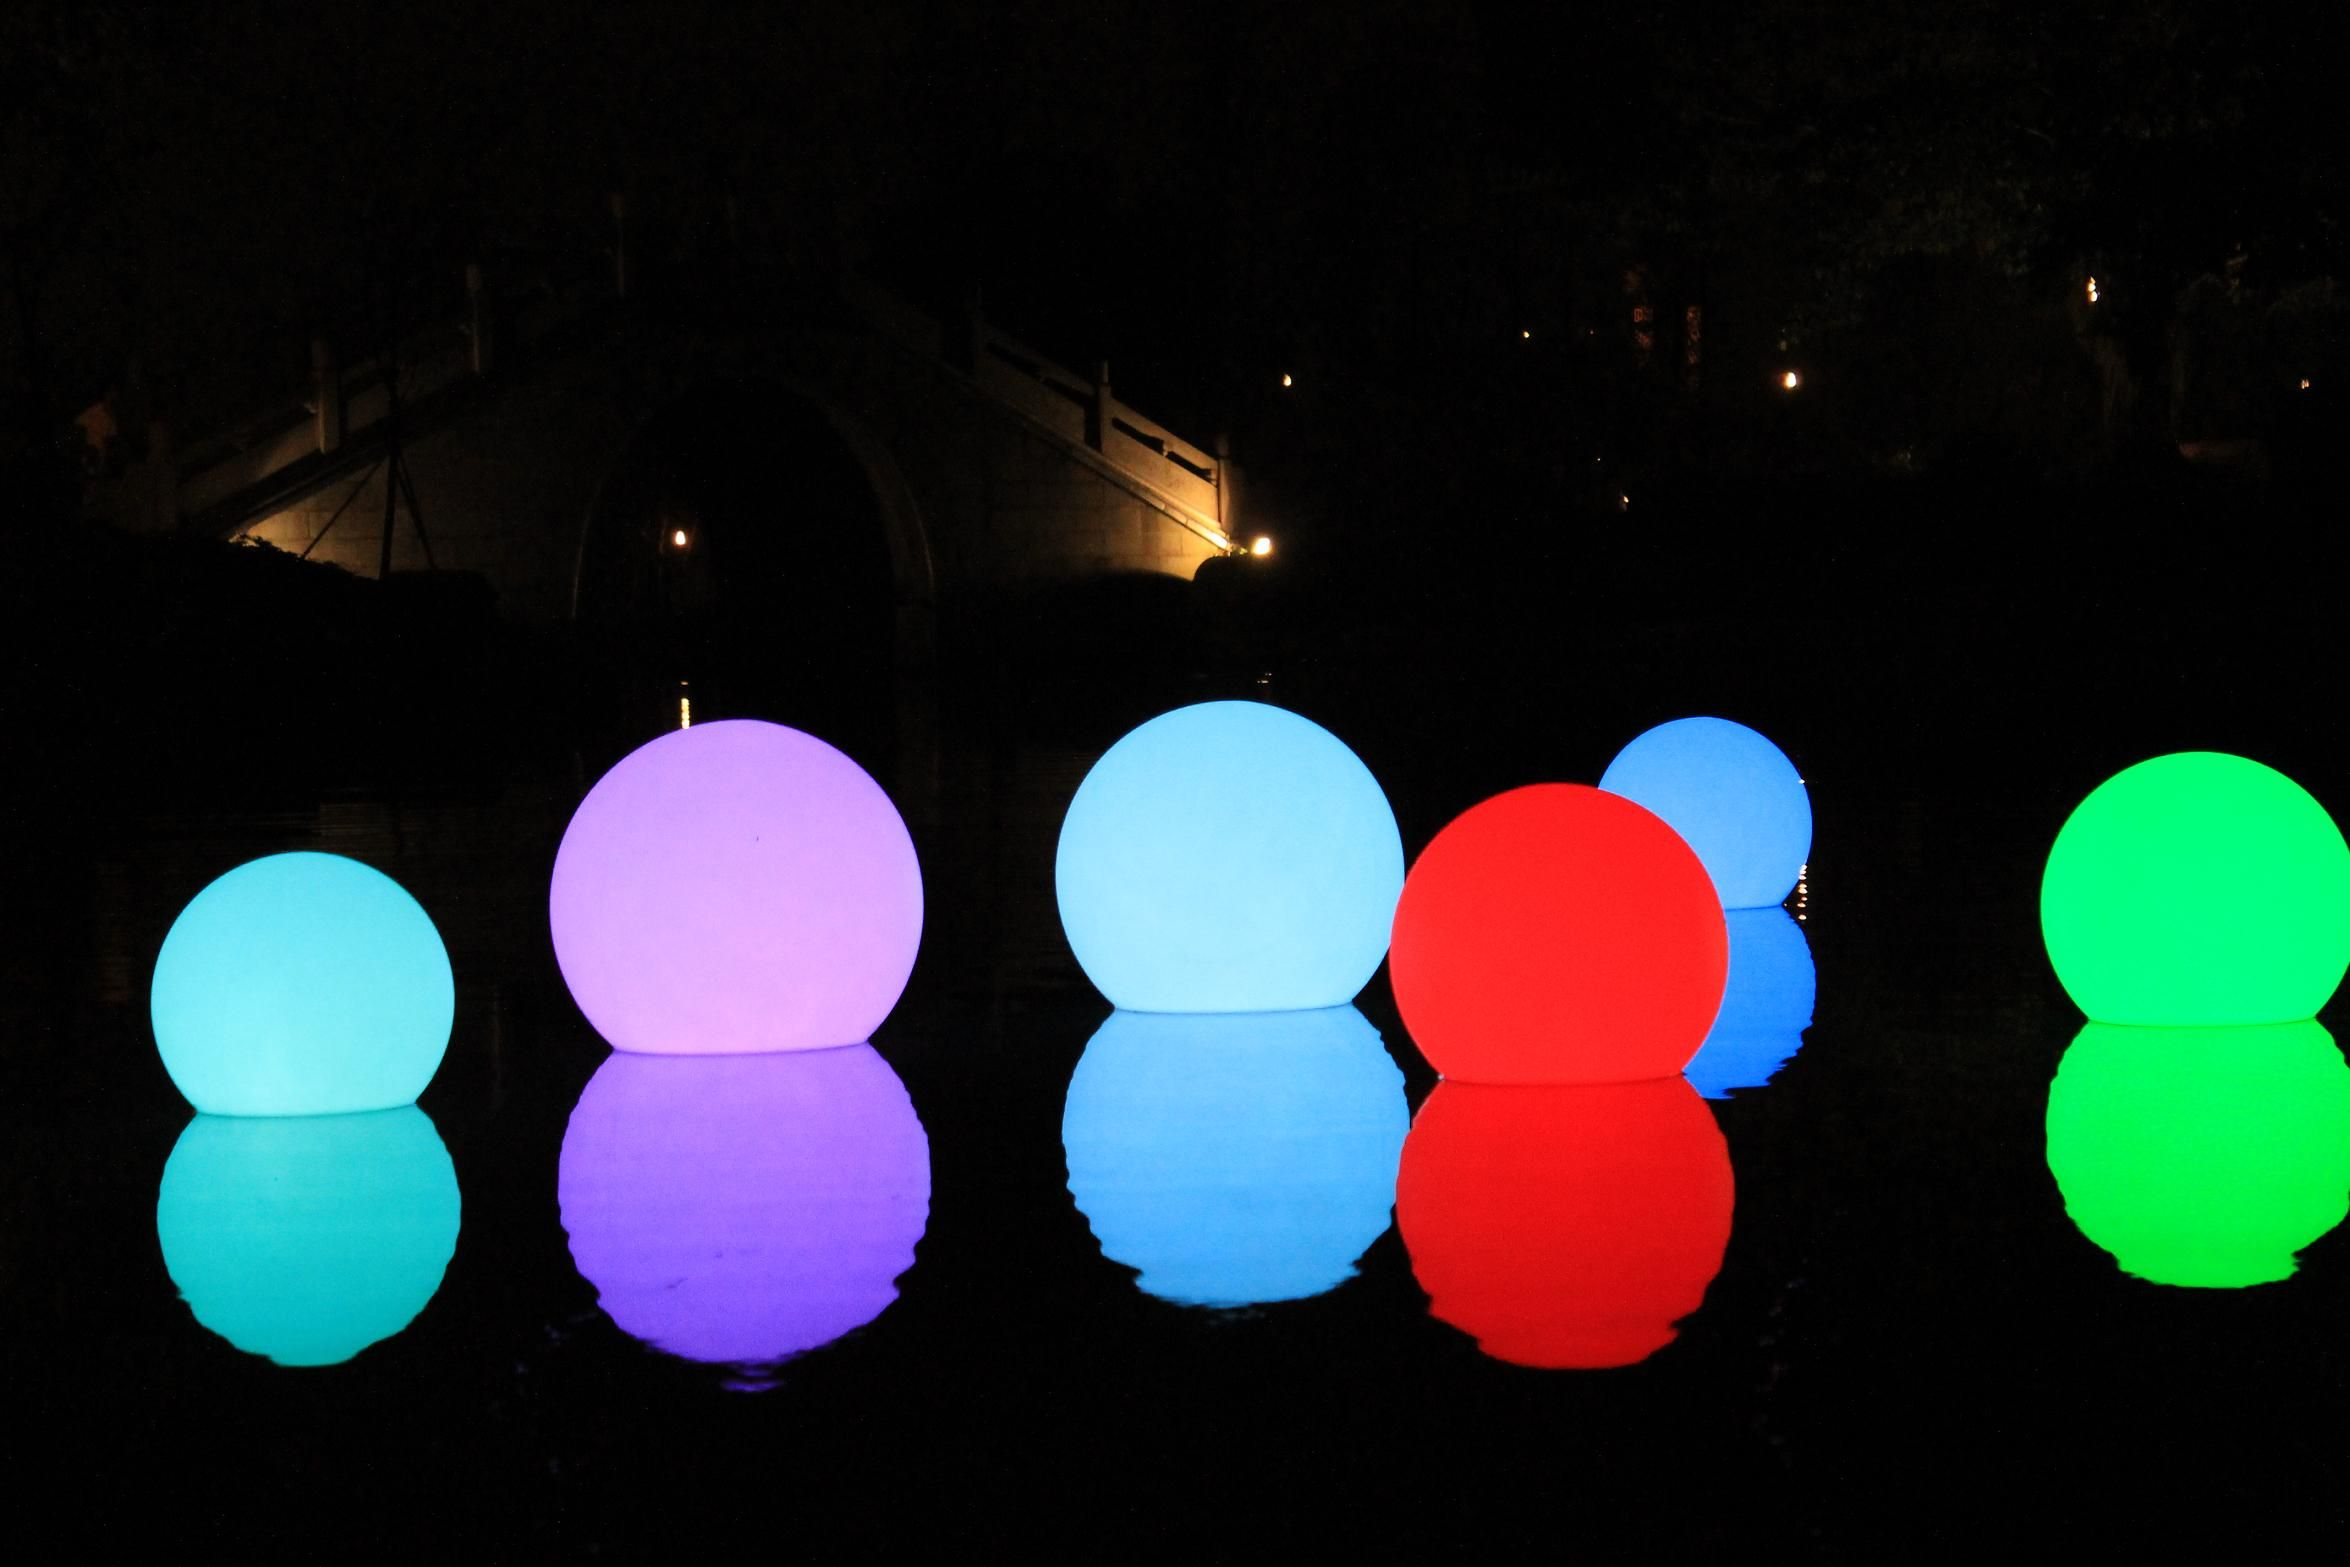 16 Ultra Color Changing Waterproof Floating Led Rainbow Orb From Paperlanternstore At The Best Bulk Wholesale Pric Floating Pool Lights Pool Light Pool Lights